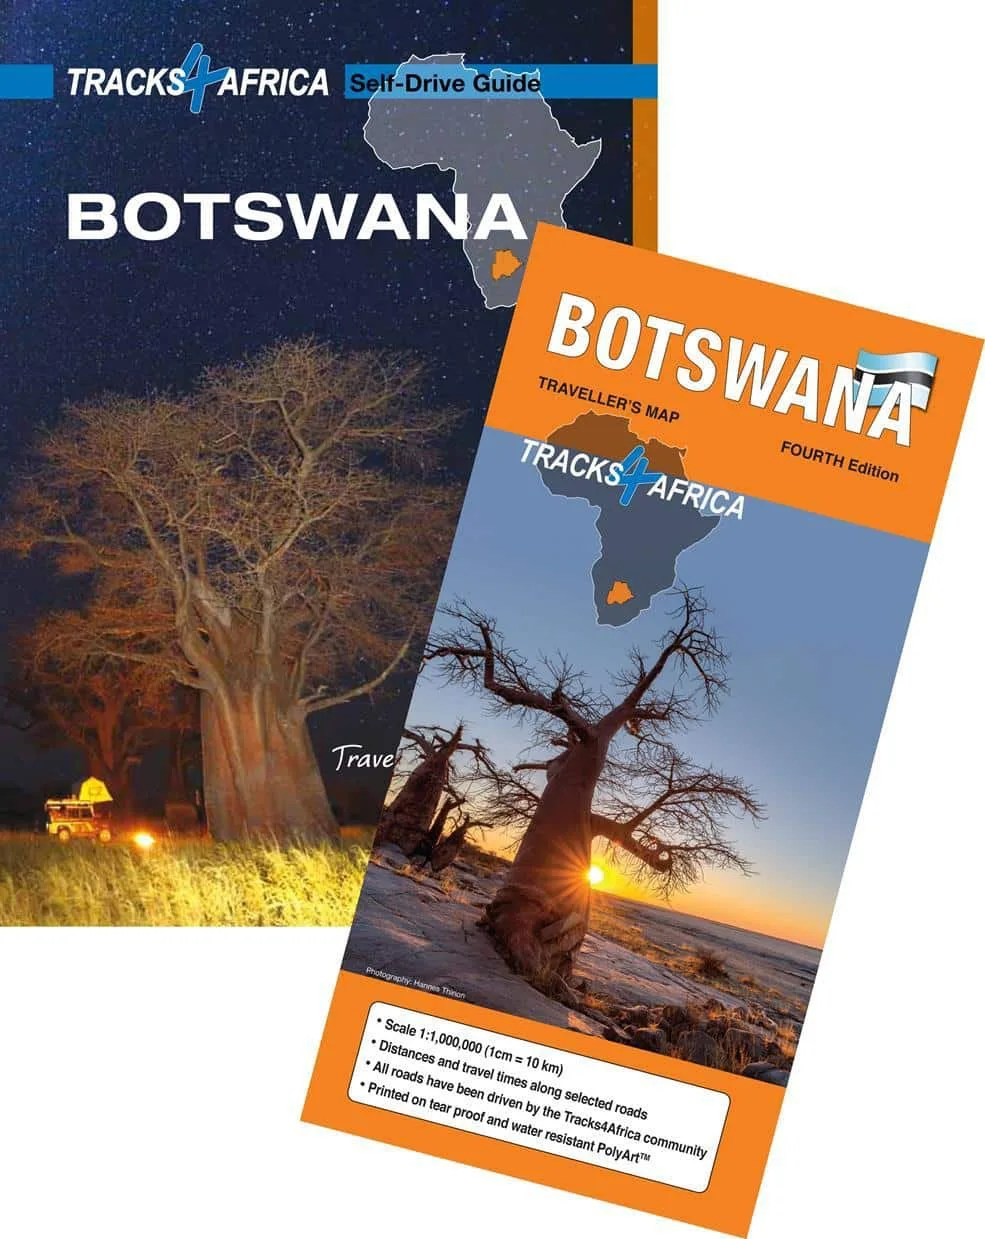 The paper map and guide book for Botswana.